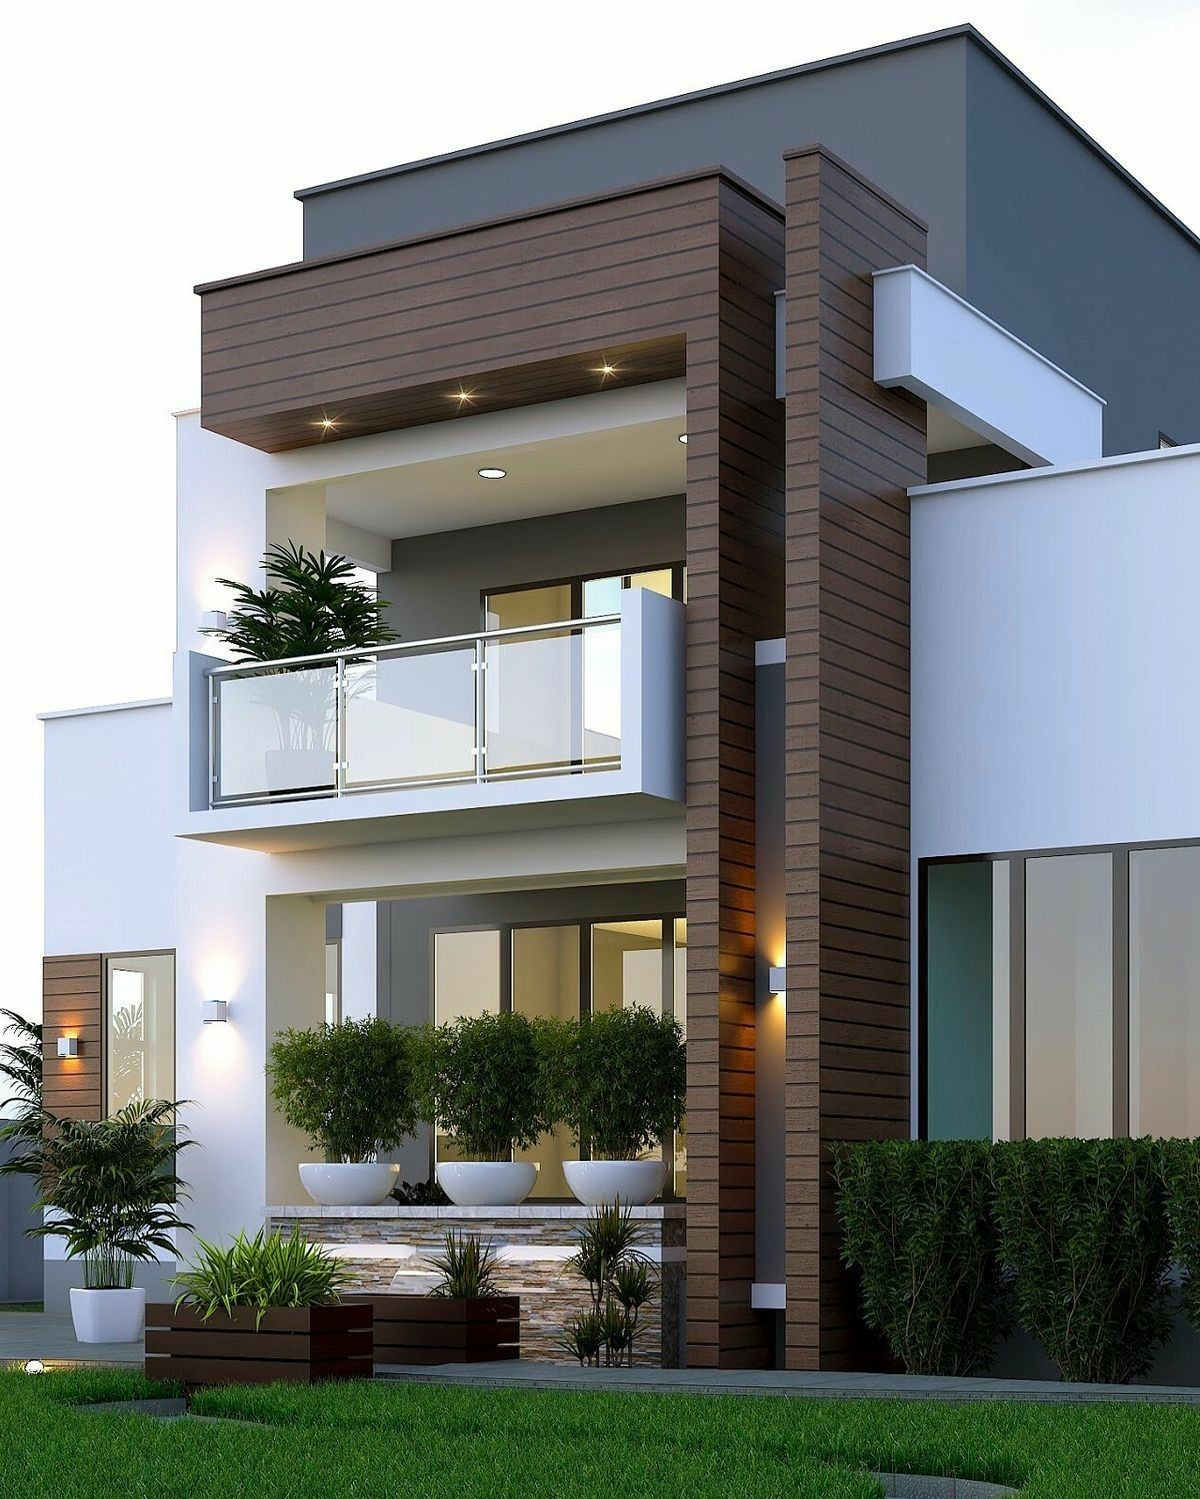 30 Contemporary Home Exterior Design Ideas: Small House Design, Facade House, House